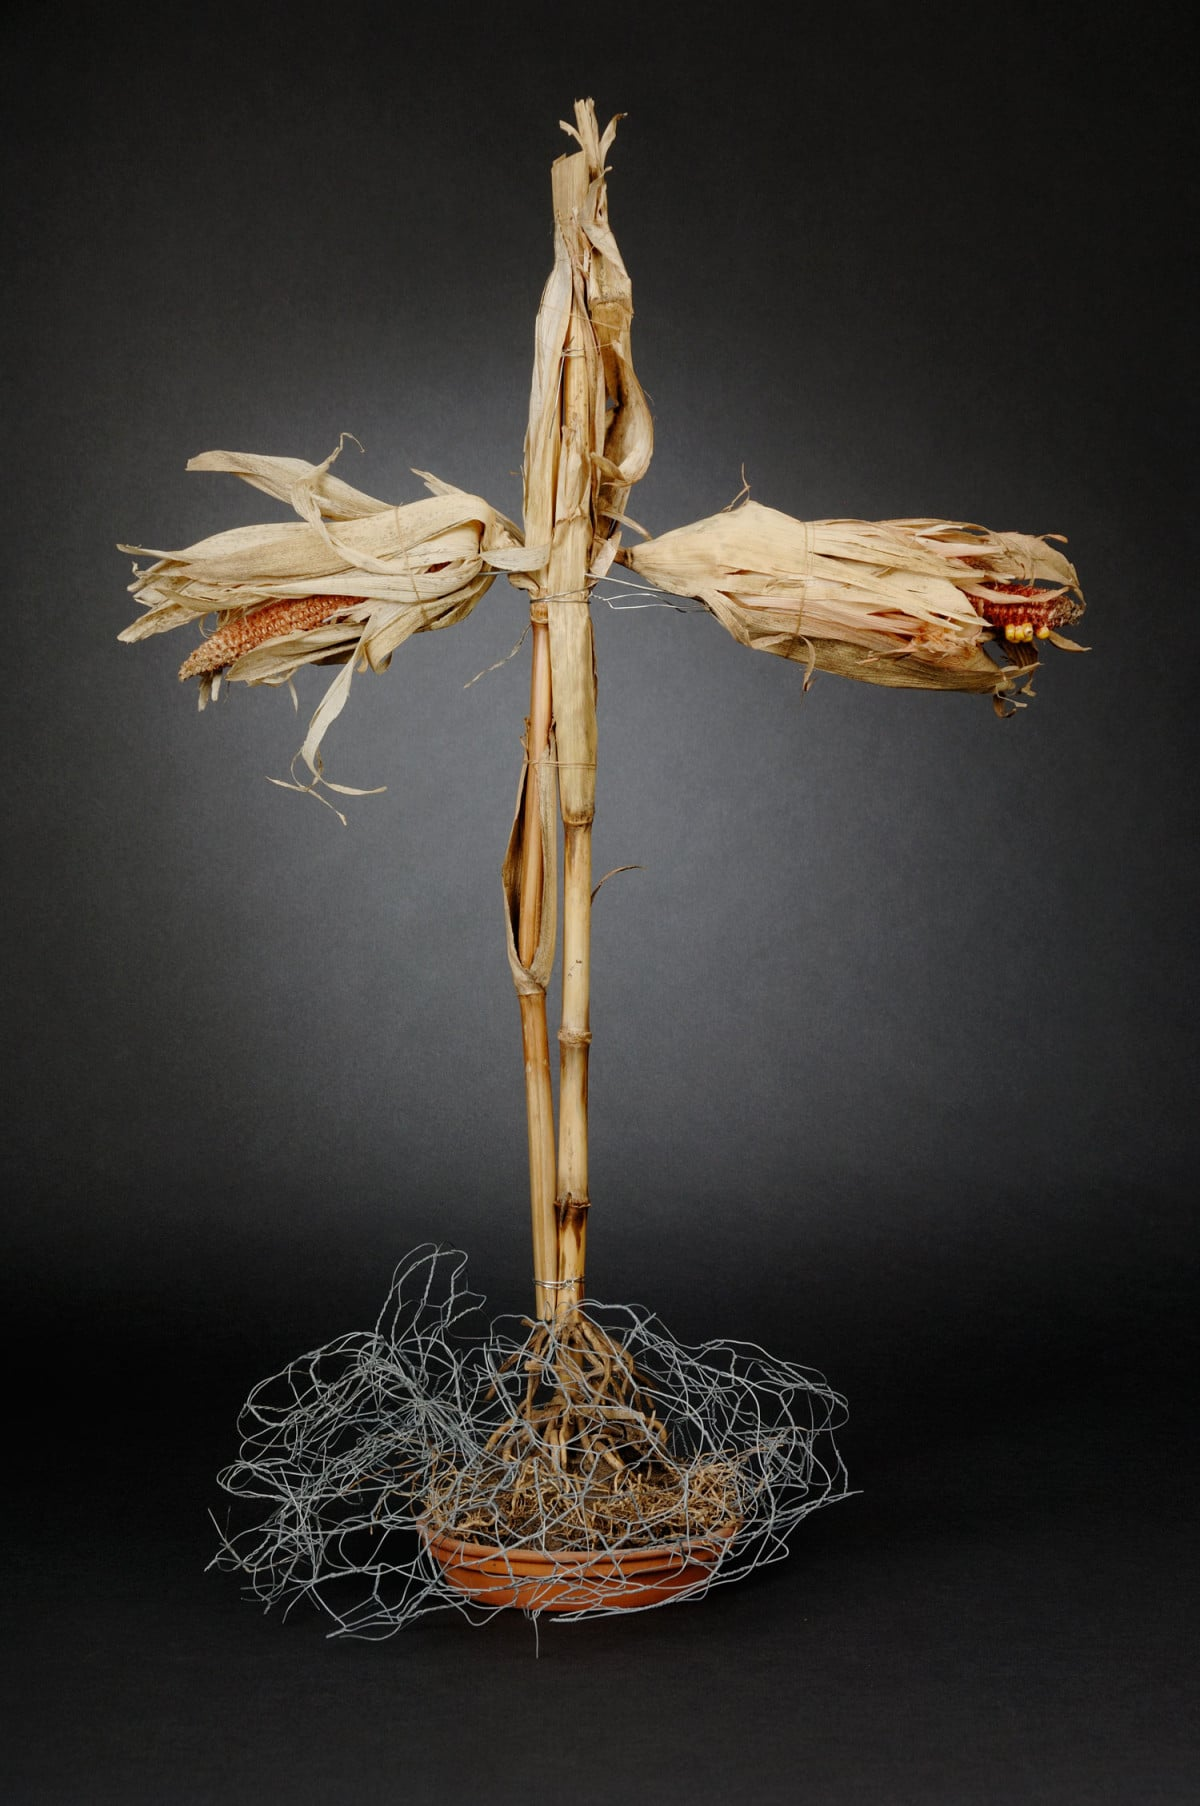 One of a lenten series of crosses made from different found materials.